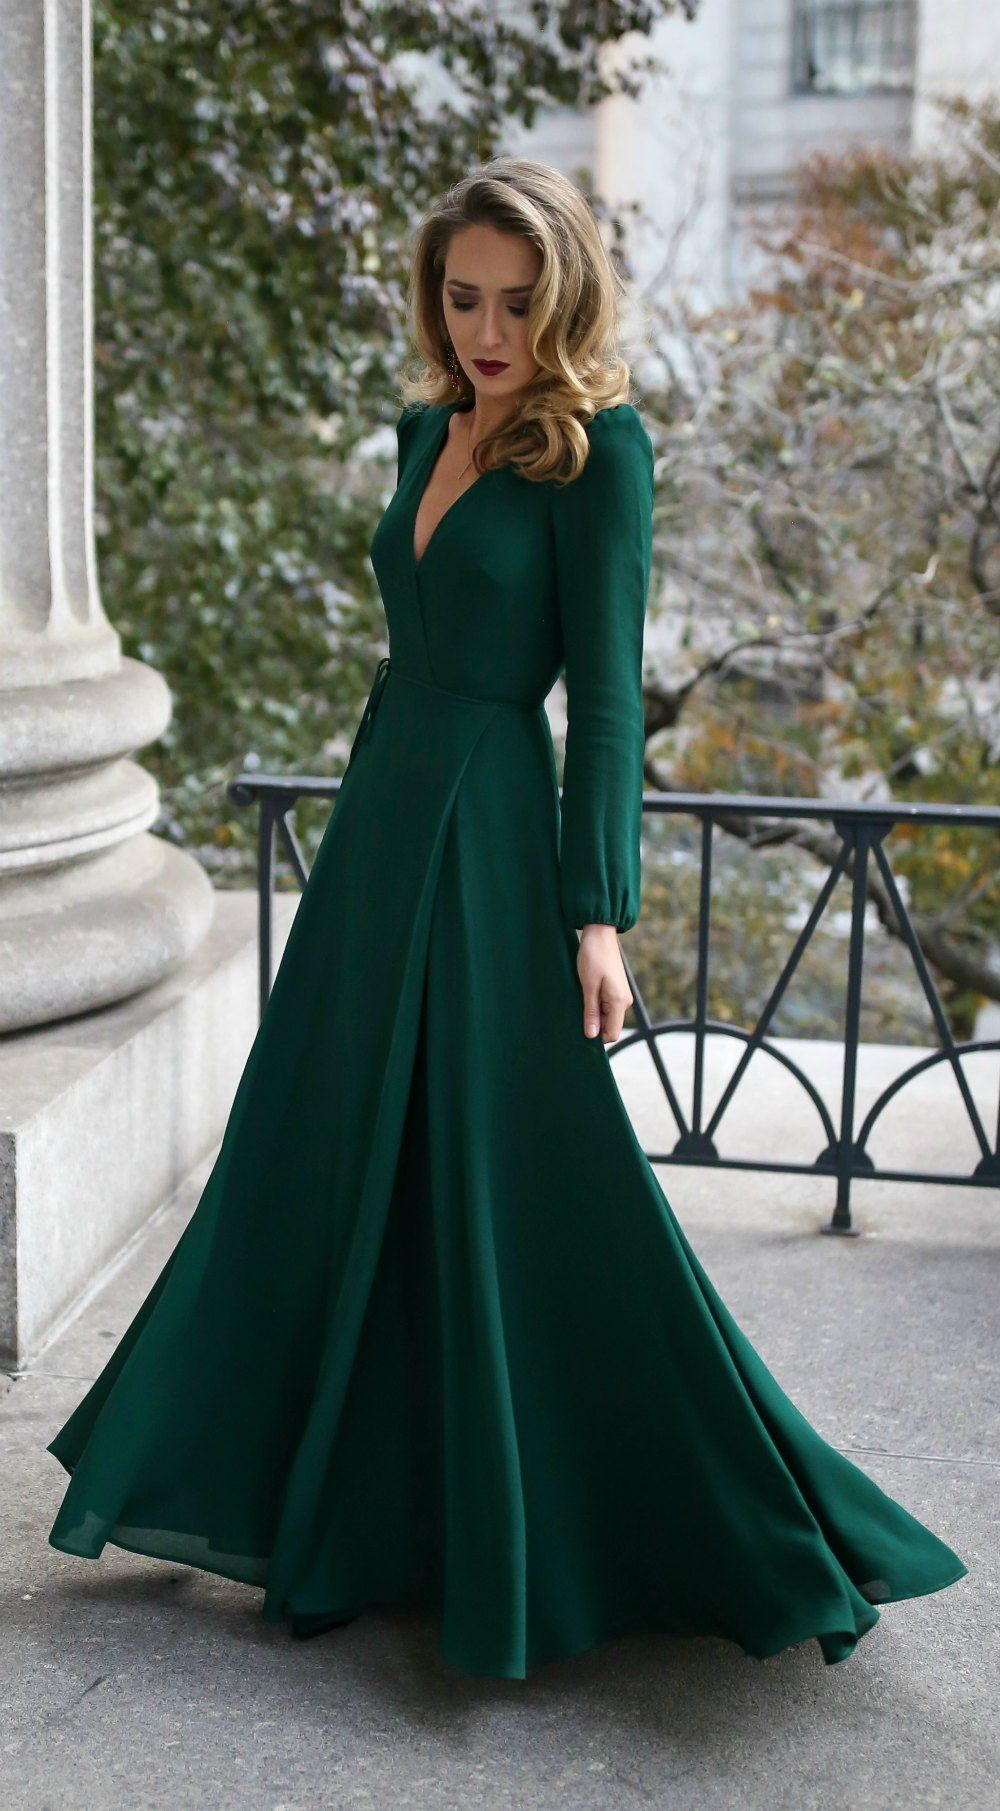 30 DRESSES IN 30 DAYS  Black Tie Wedding Guest    Emerald green long-sleeved  floor-length wrap dress c5541eba4